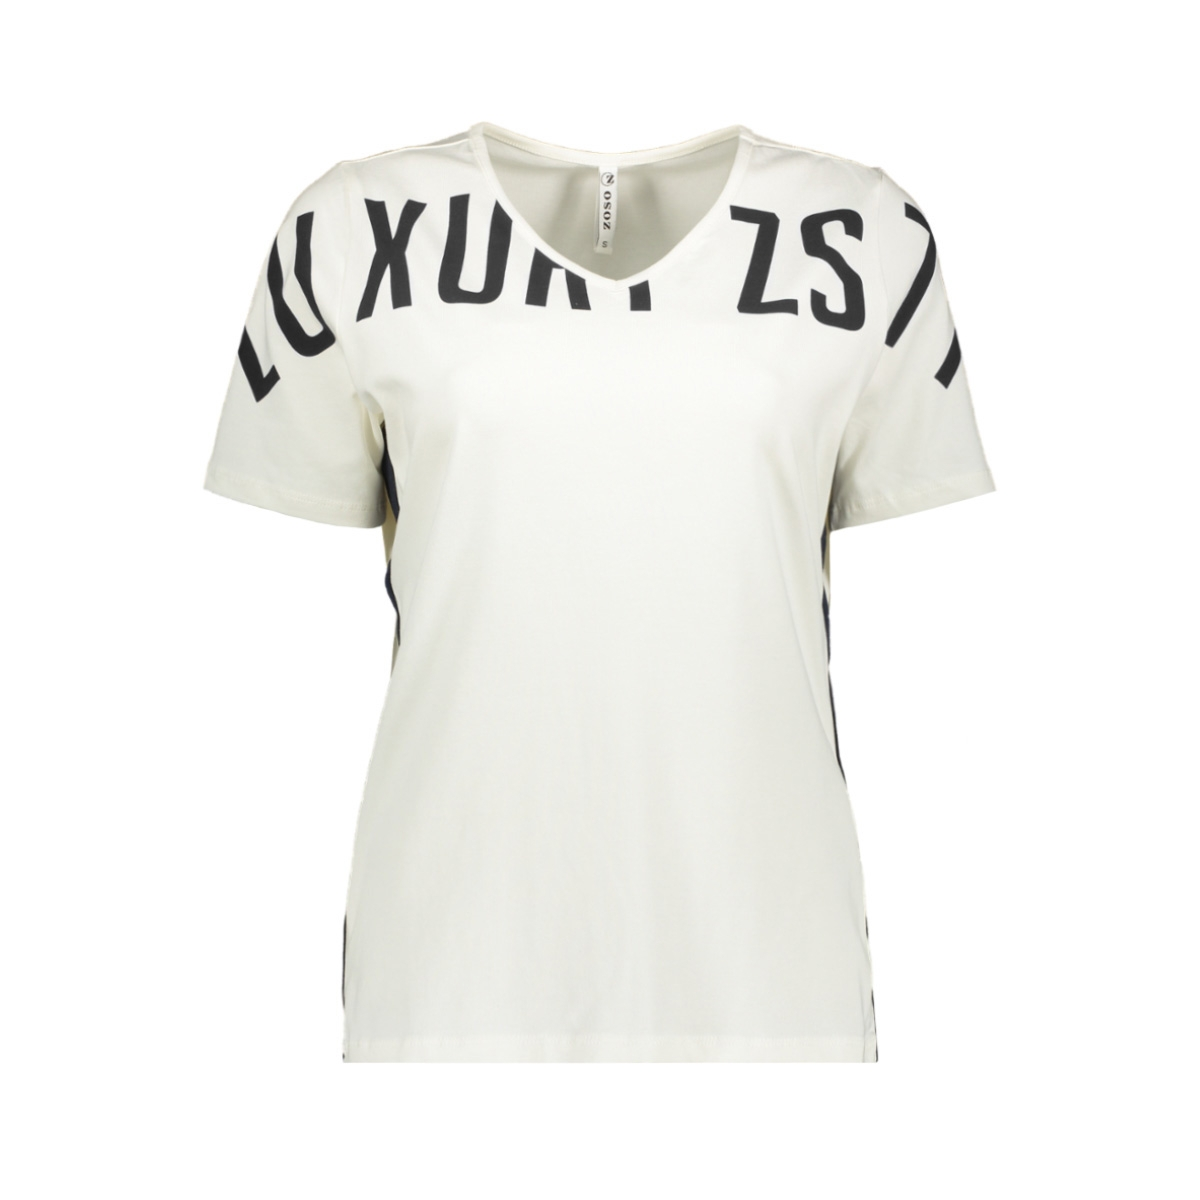 jerry t shirt with piping 194 zoso t-shirt off white/black